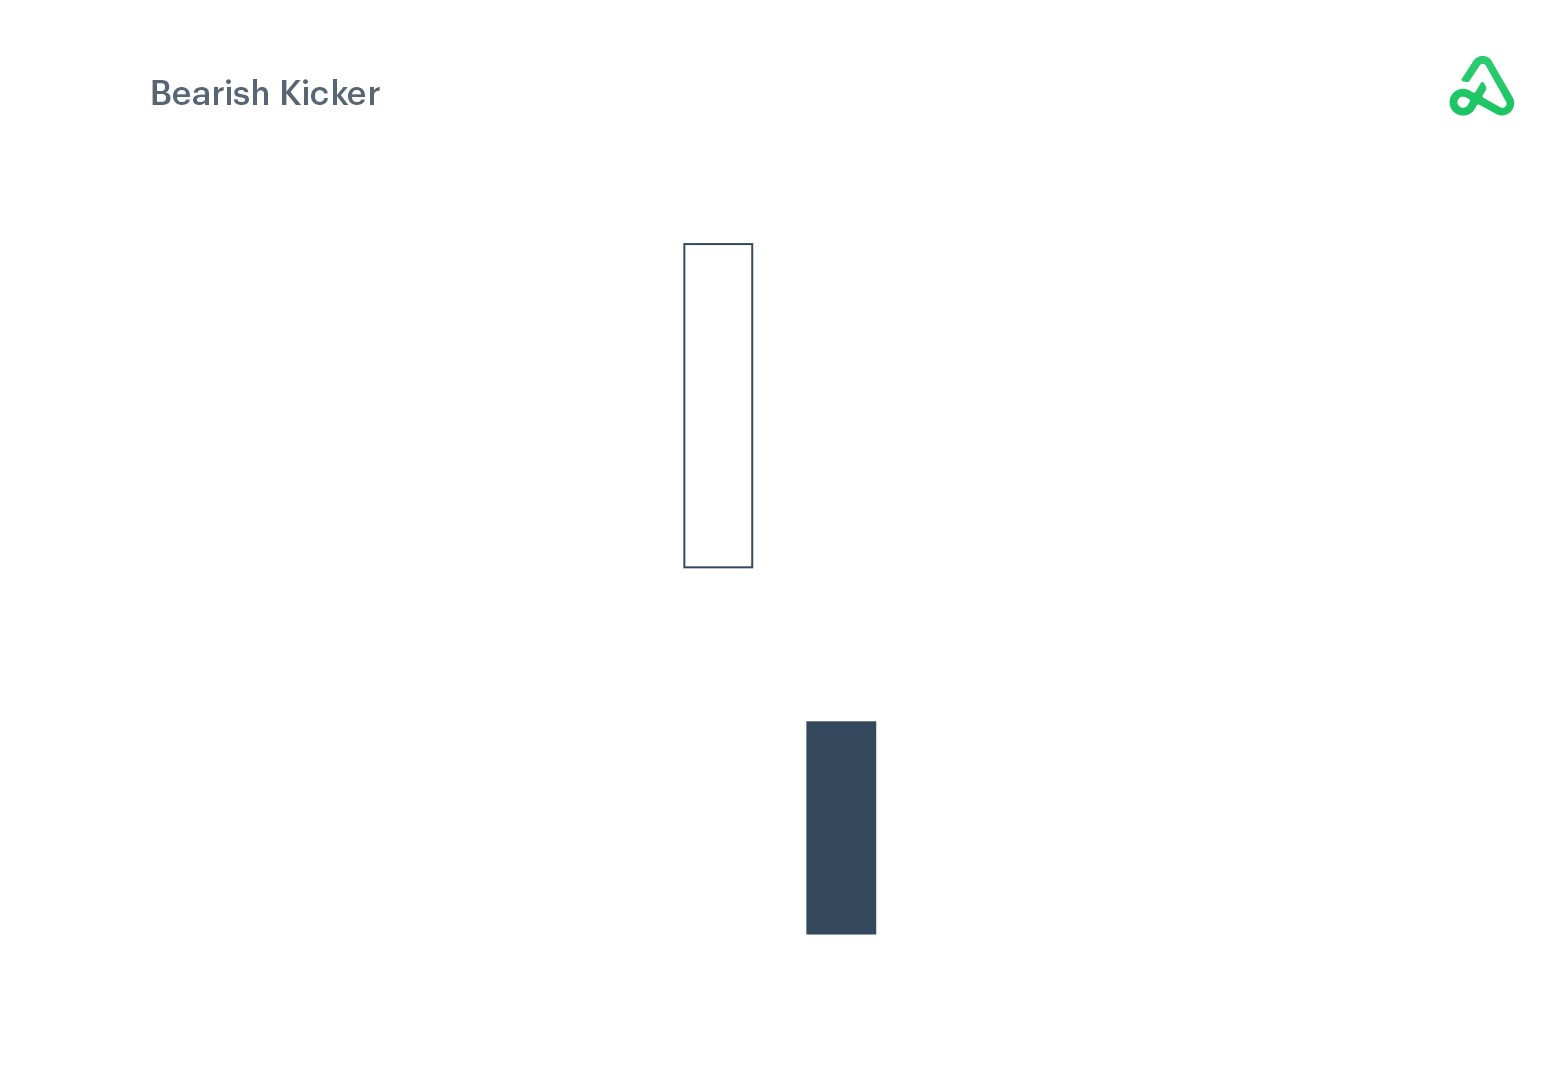 Bearish Kicker example image